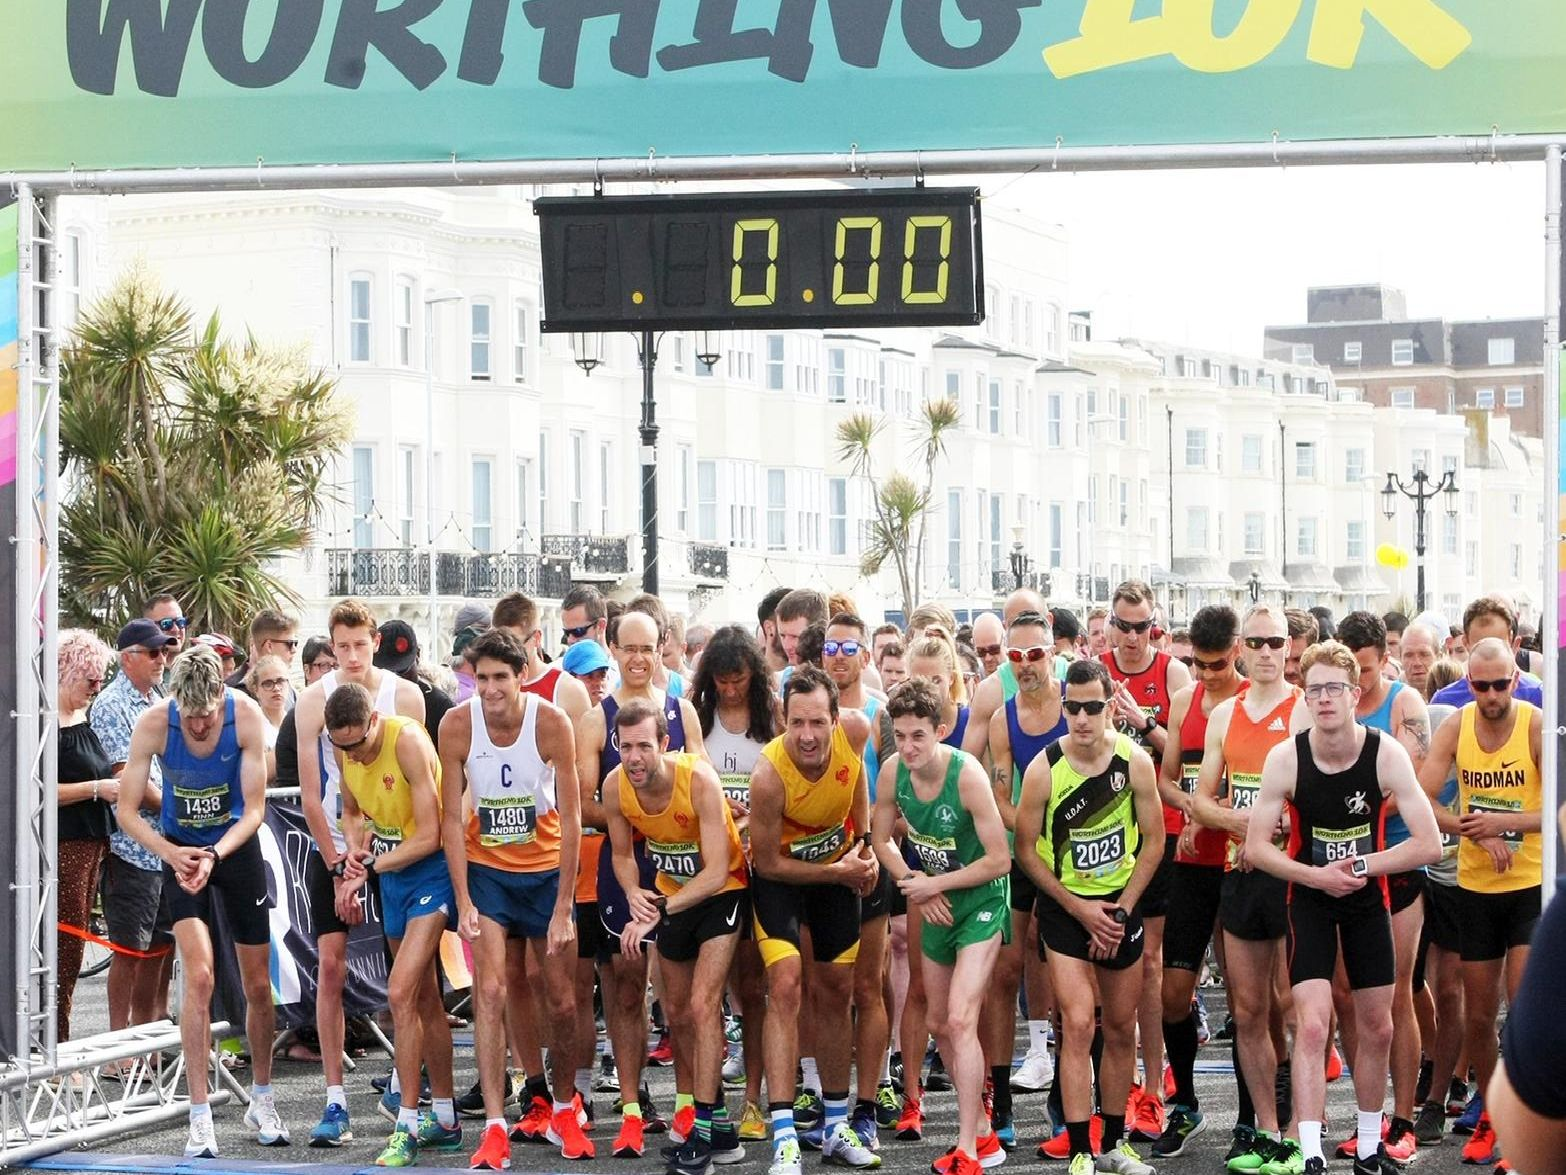 Runners set off in the Worthing 10k